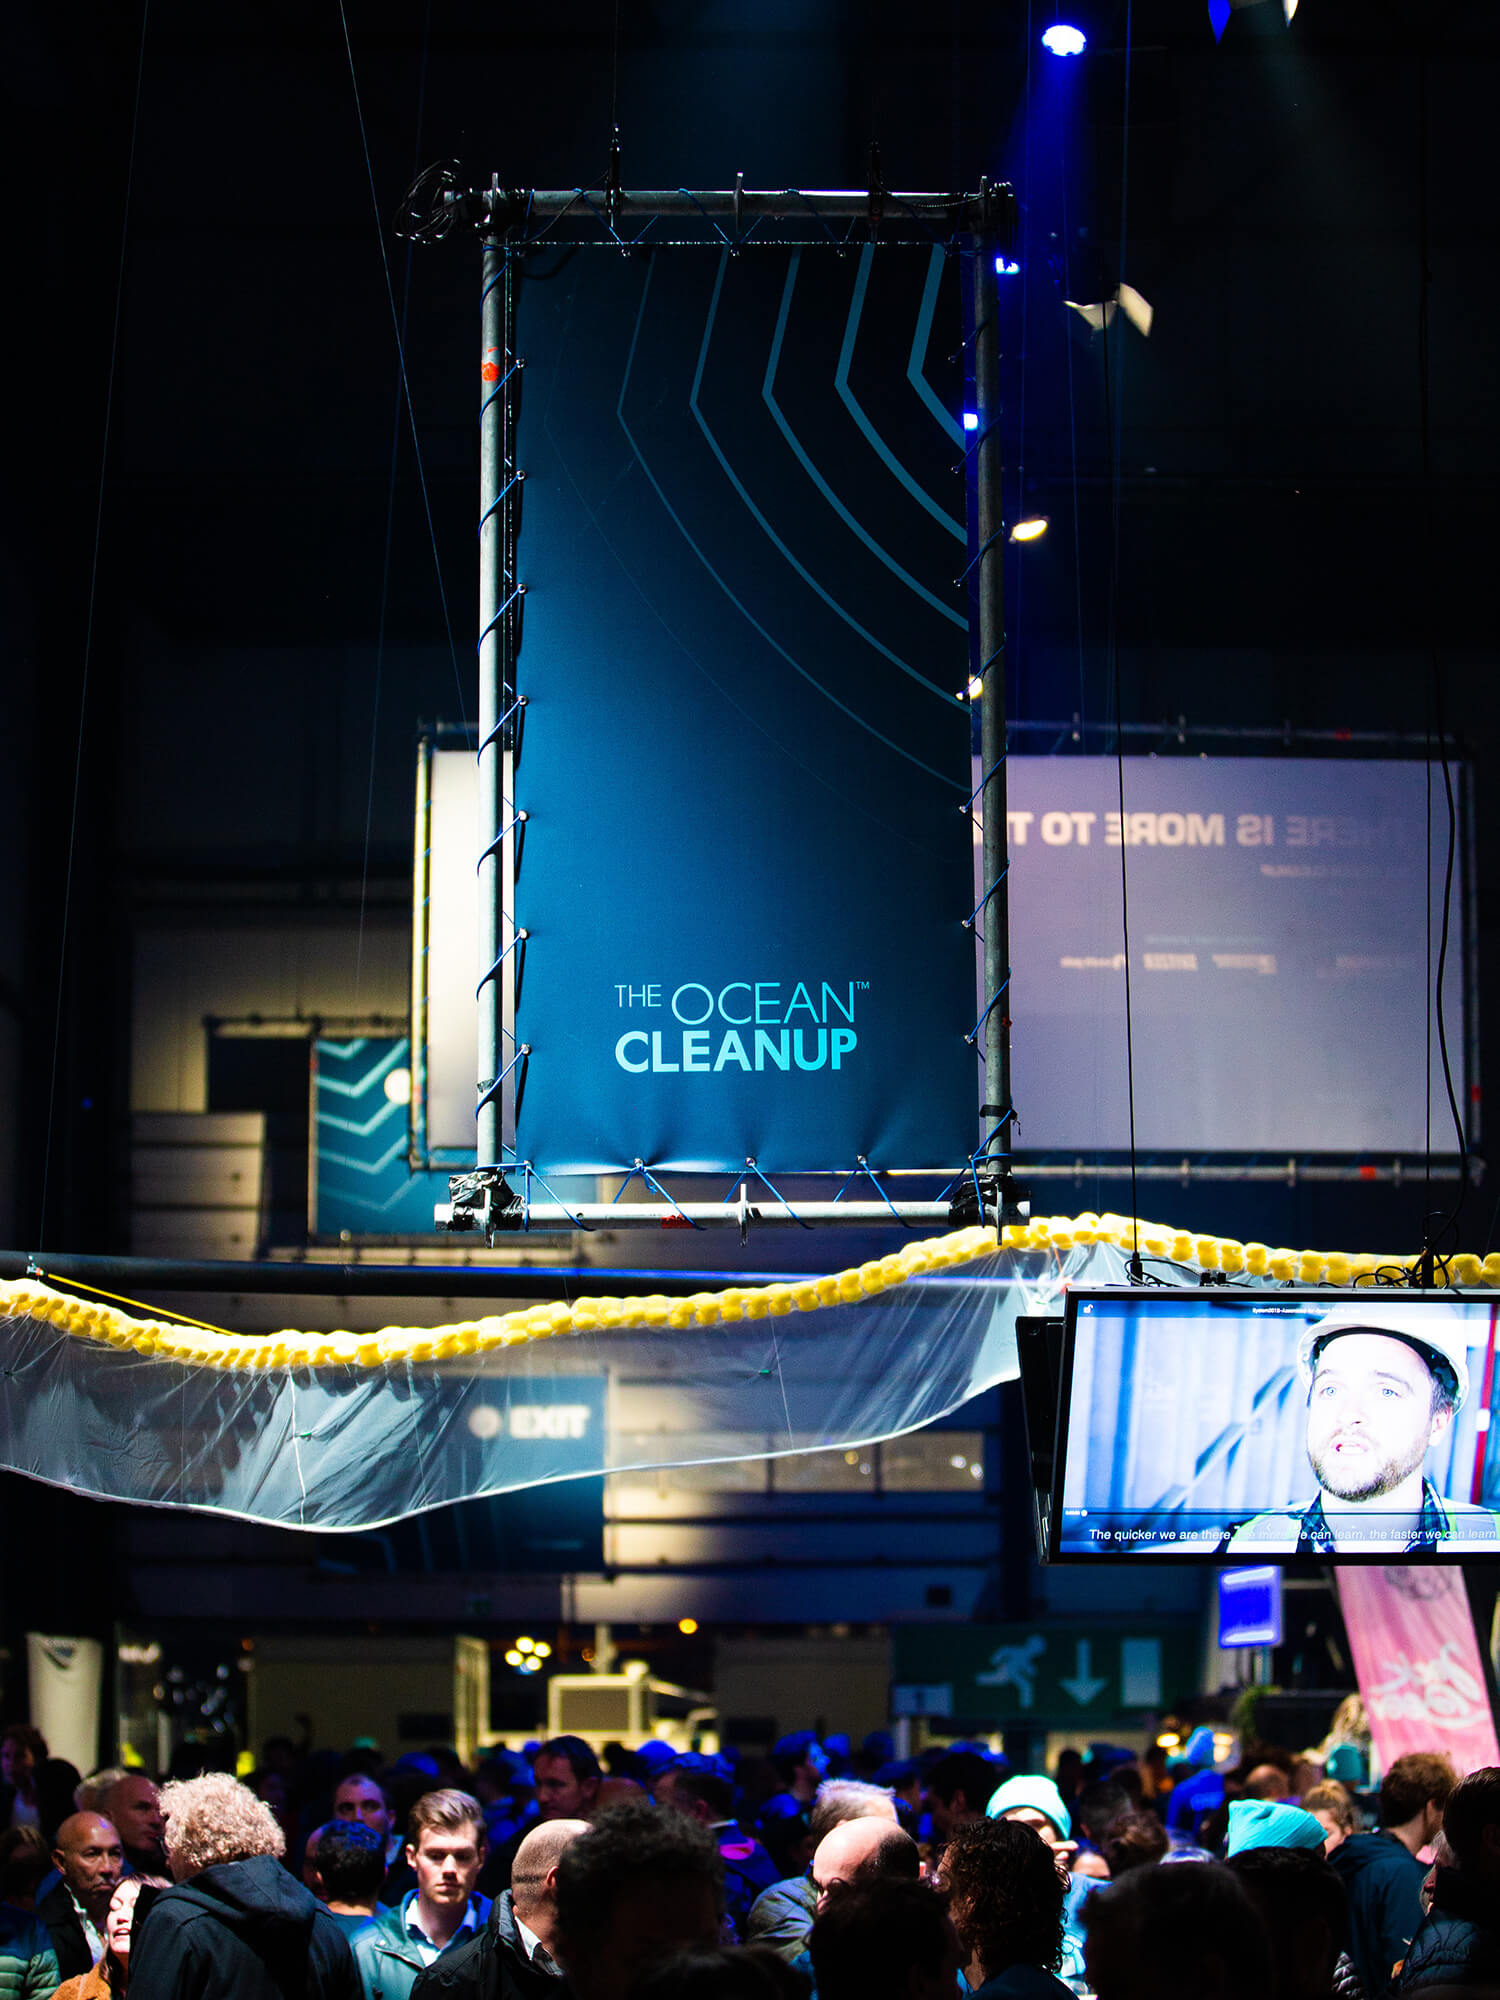 DITTMAR_the-ocean-cleanup_signage-02